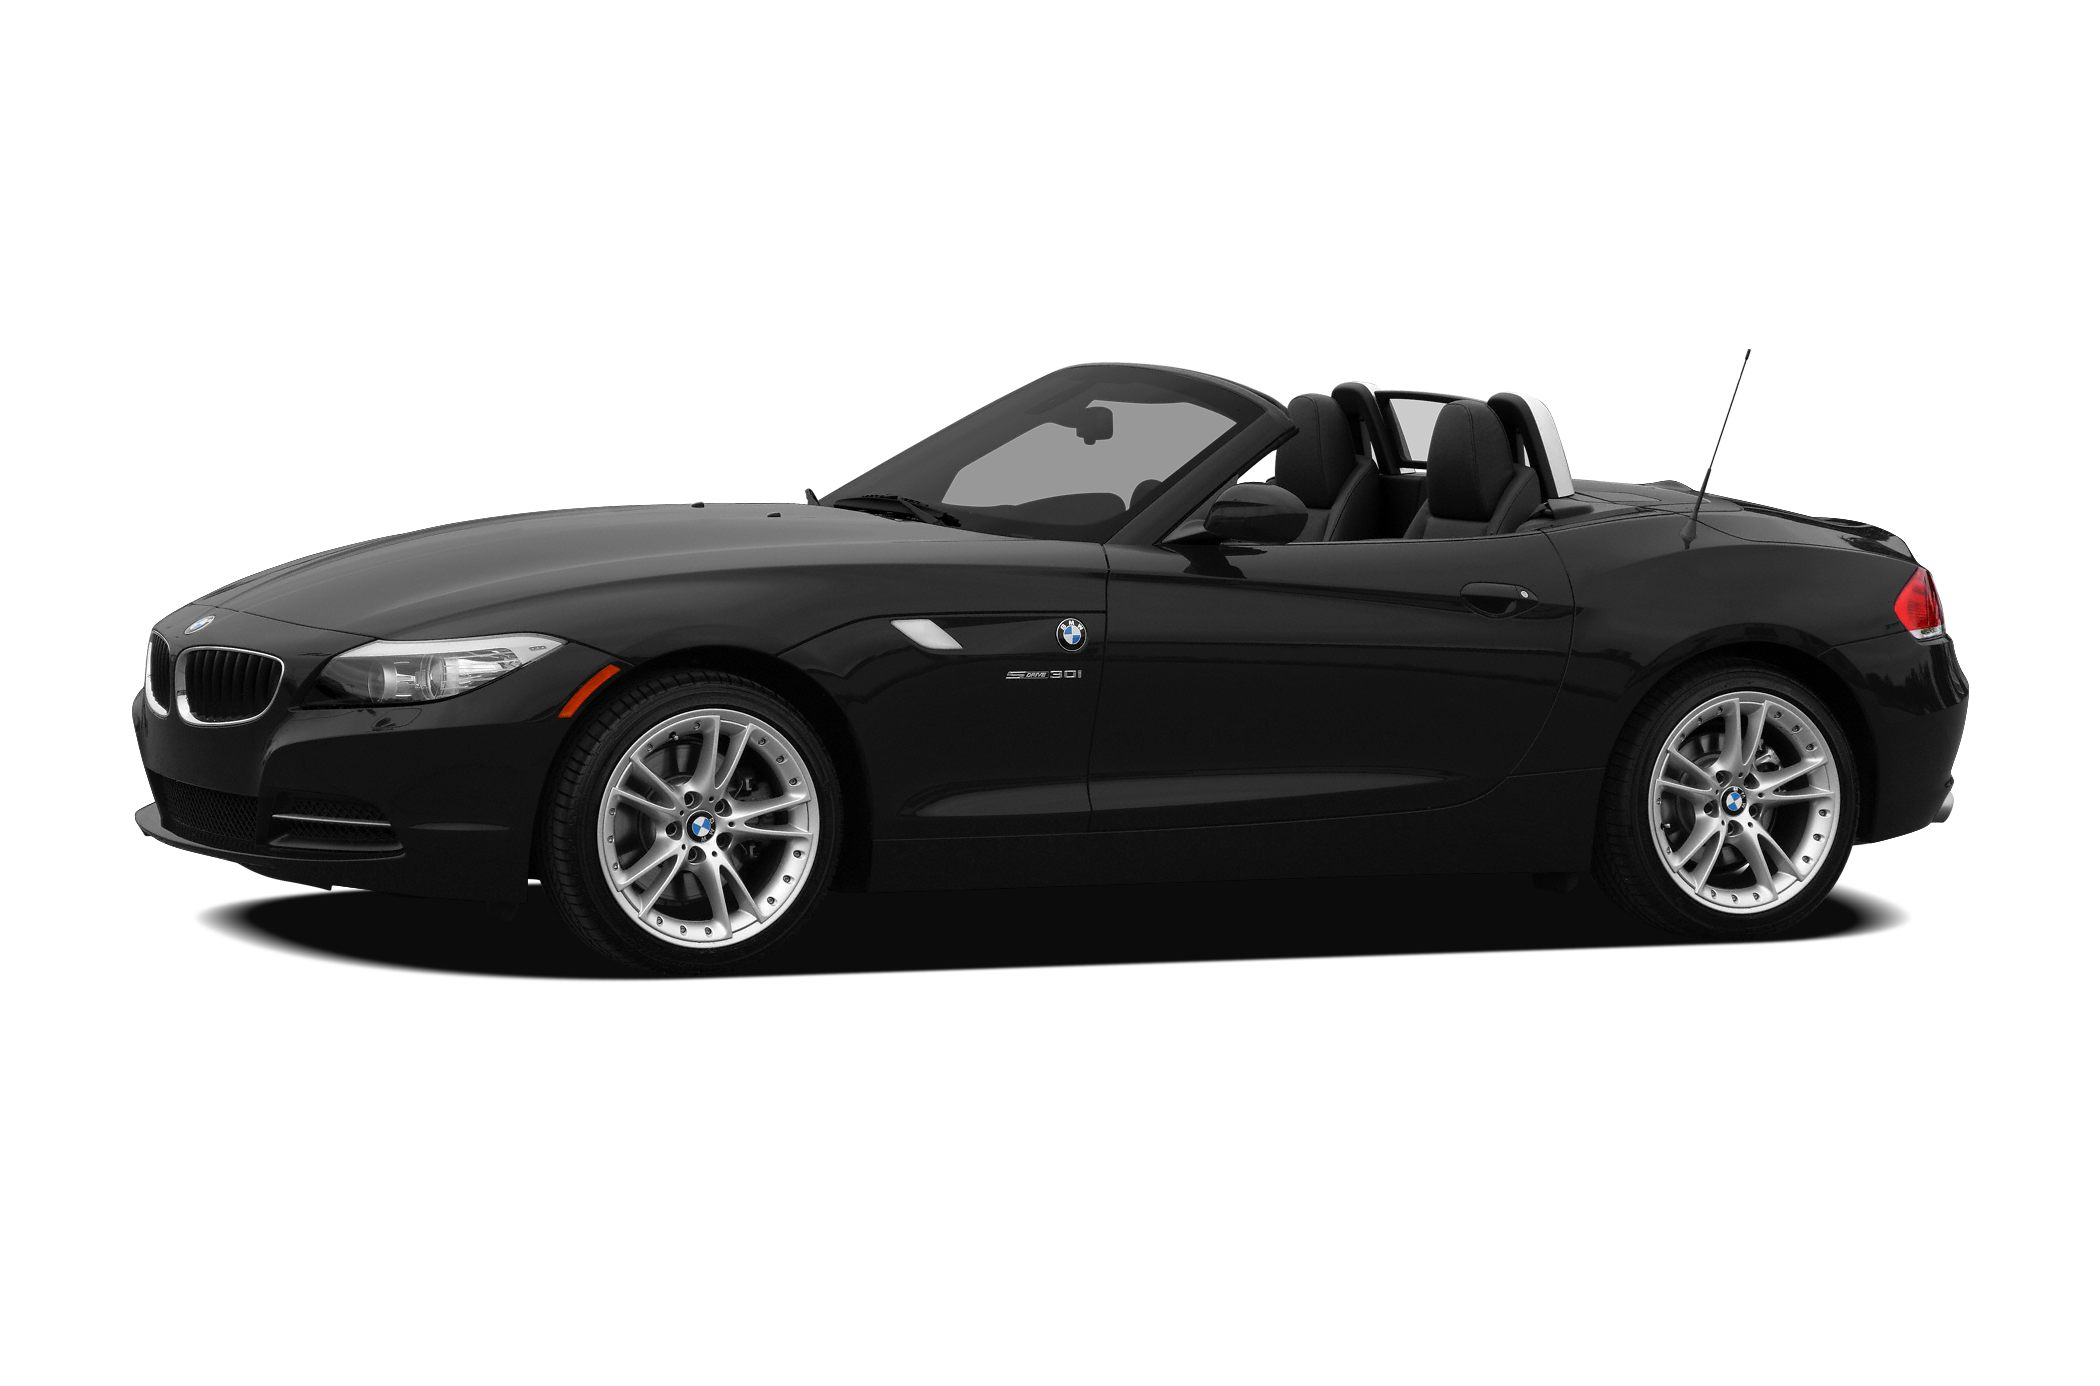 2010 BMW Z4 SDrive30i Convertible for sale in Indianapolis for $31,900 with 35,833 miles.